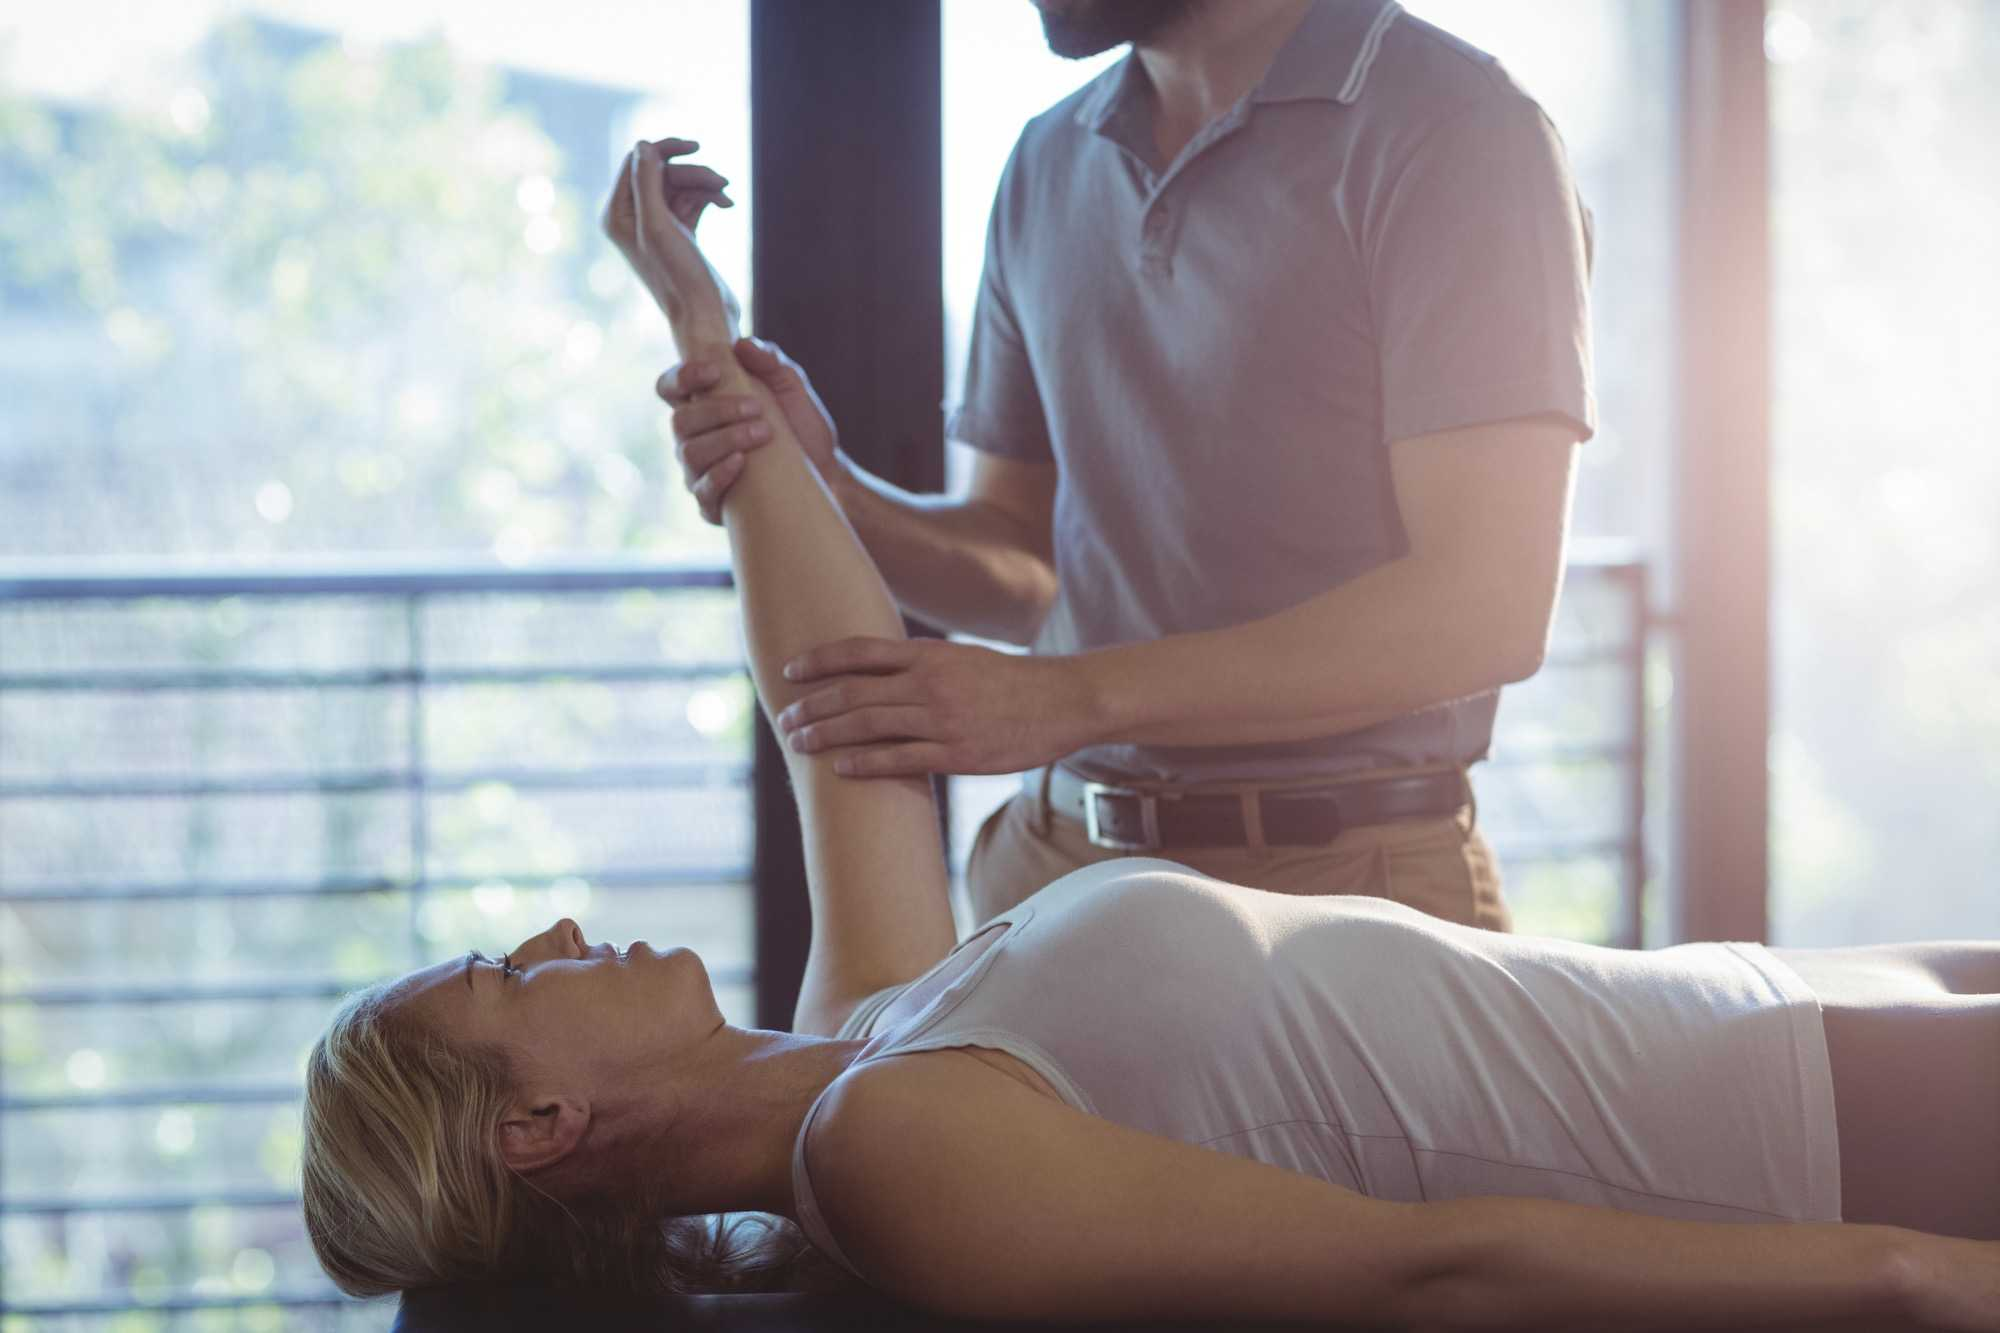 2woman-receiving-hand-therapy-exercises-from-physio-5N3LK8G